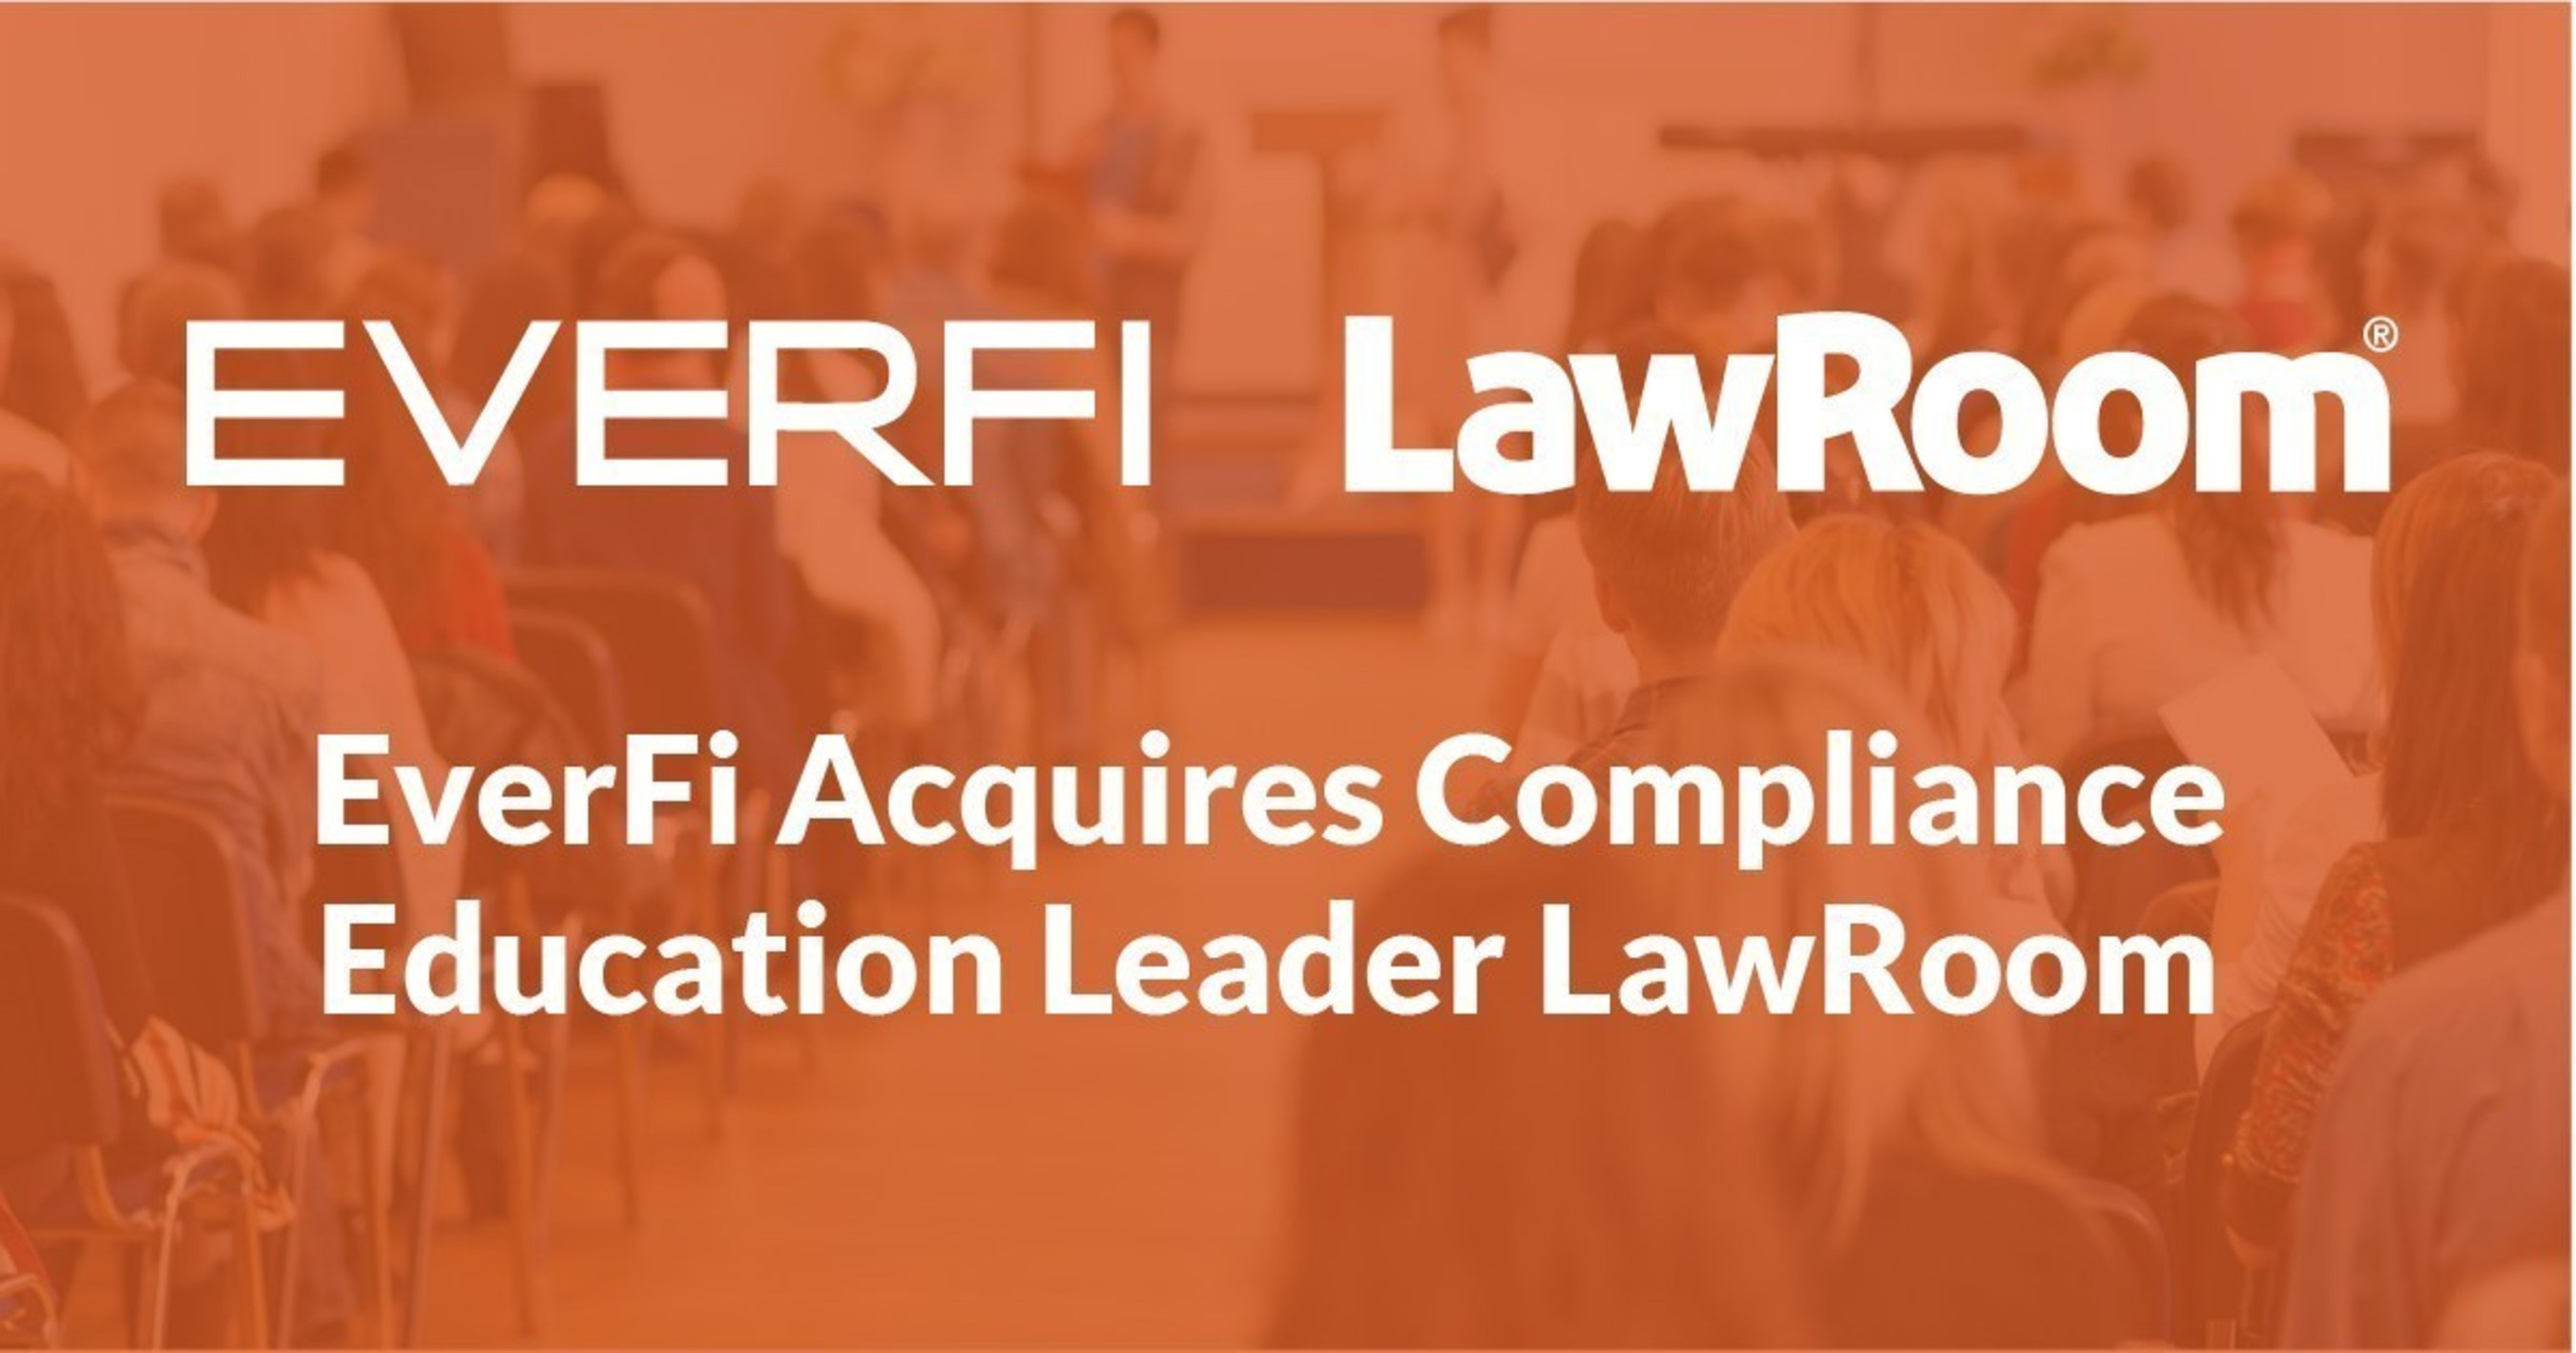 EverFi Acquires LawRoom Creating One of Education's Largest Players with Over 3,000 Major Customers and 6 Million Annual Learners